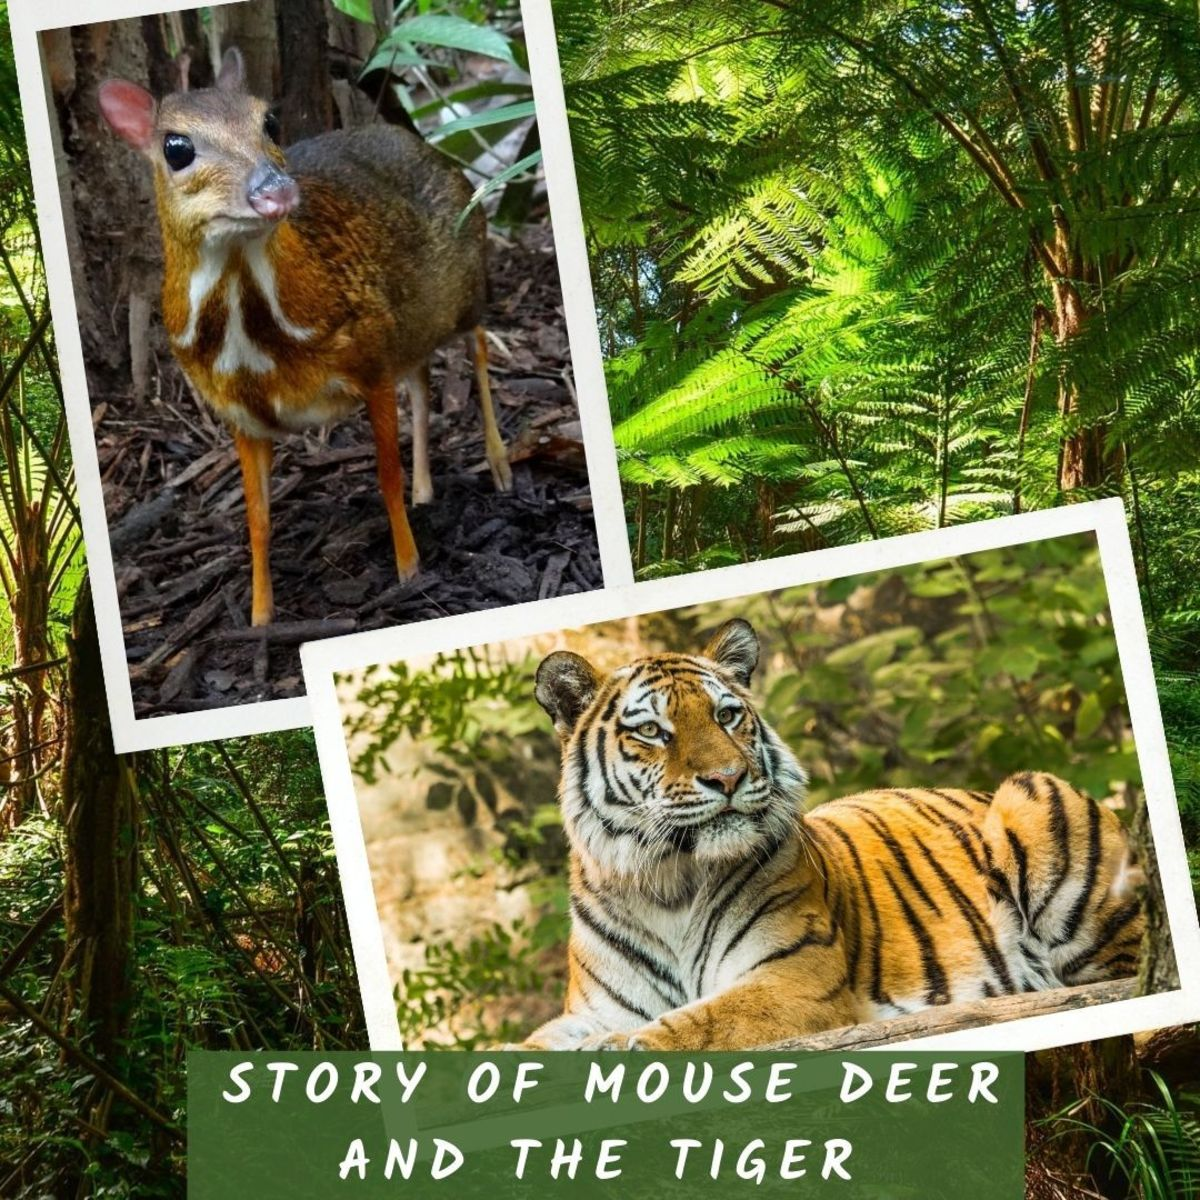 Story of mouse deer and the tiger